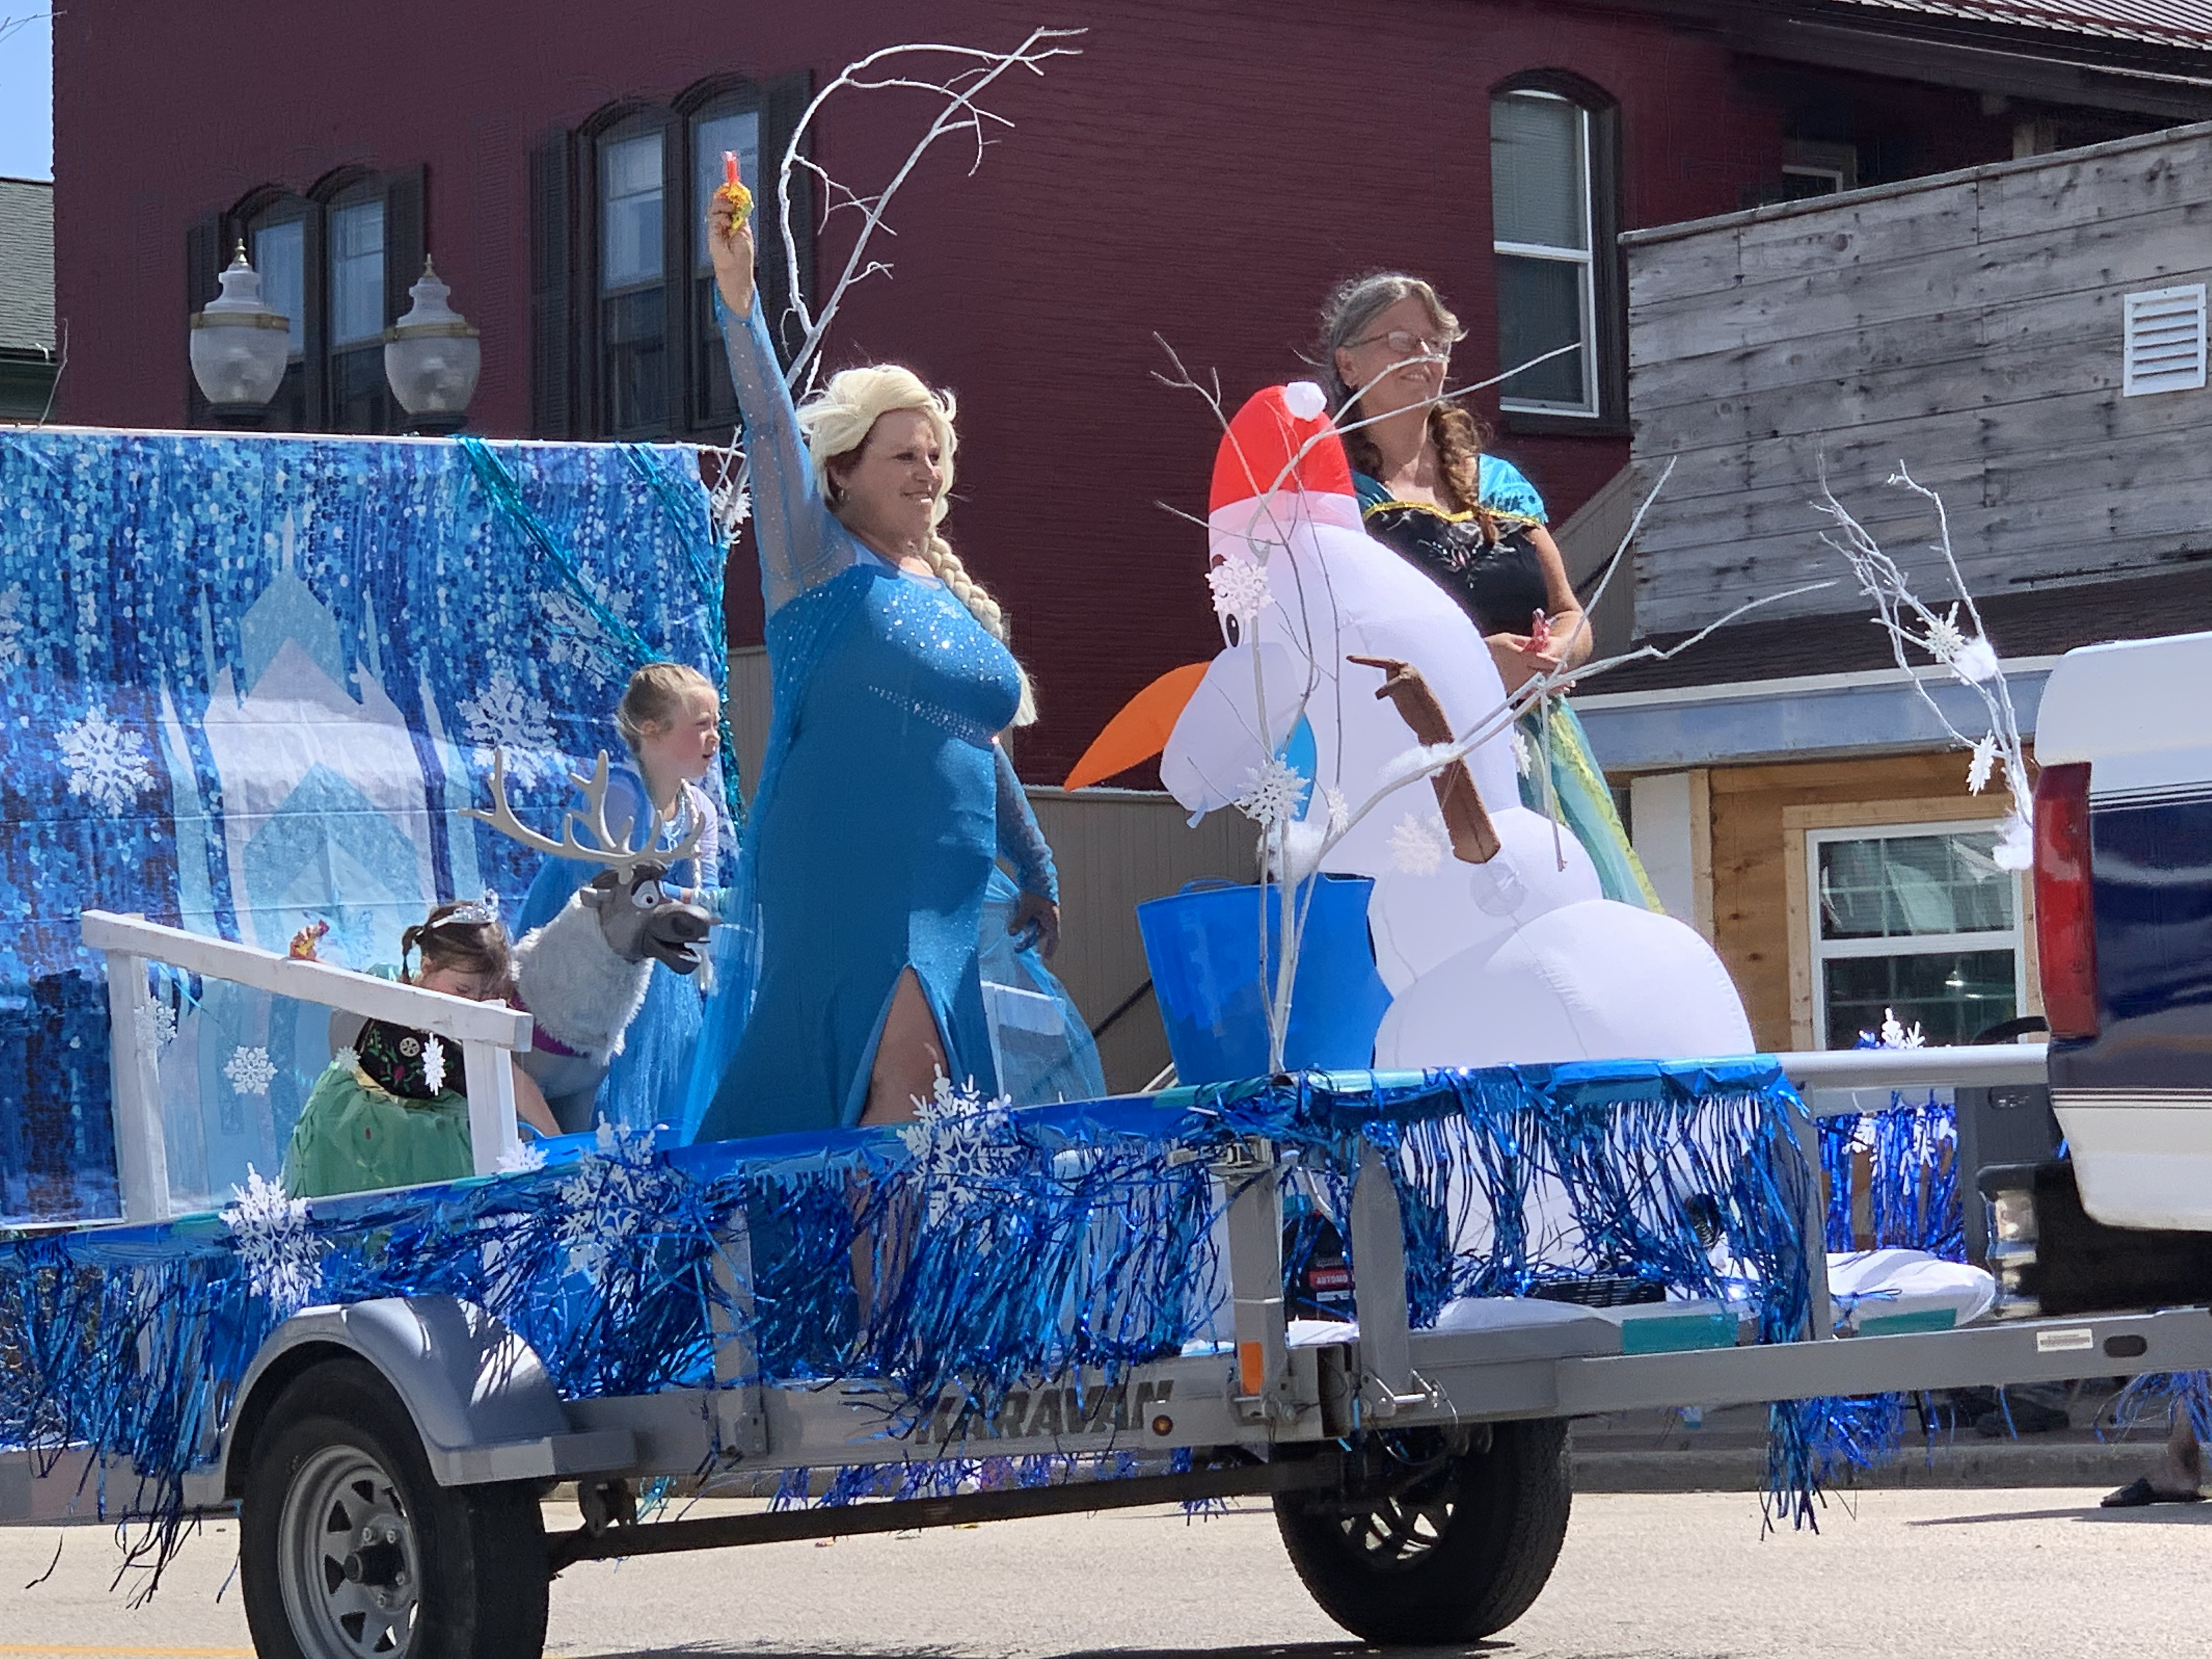 """A float featuring the characters from """"Frozen"""" was a sight to see as temperatures rose to 80 degrees and higher during the Lumberjack Days parade on Aug. 29.Luke Reimer 